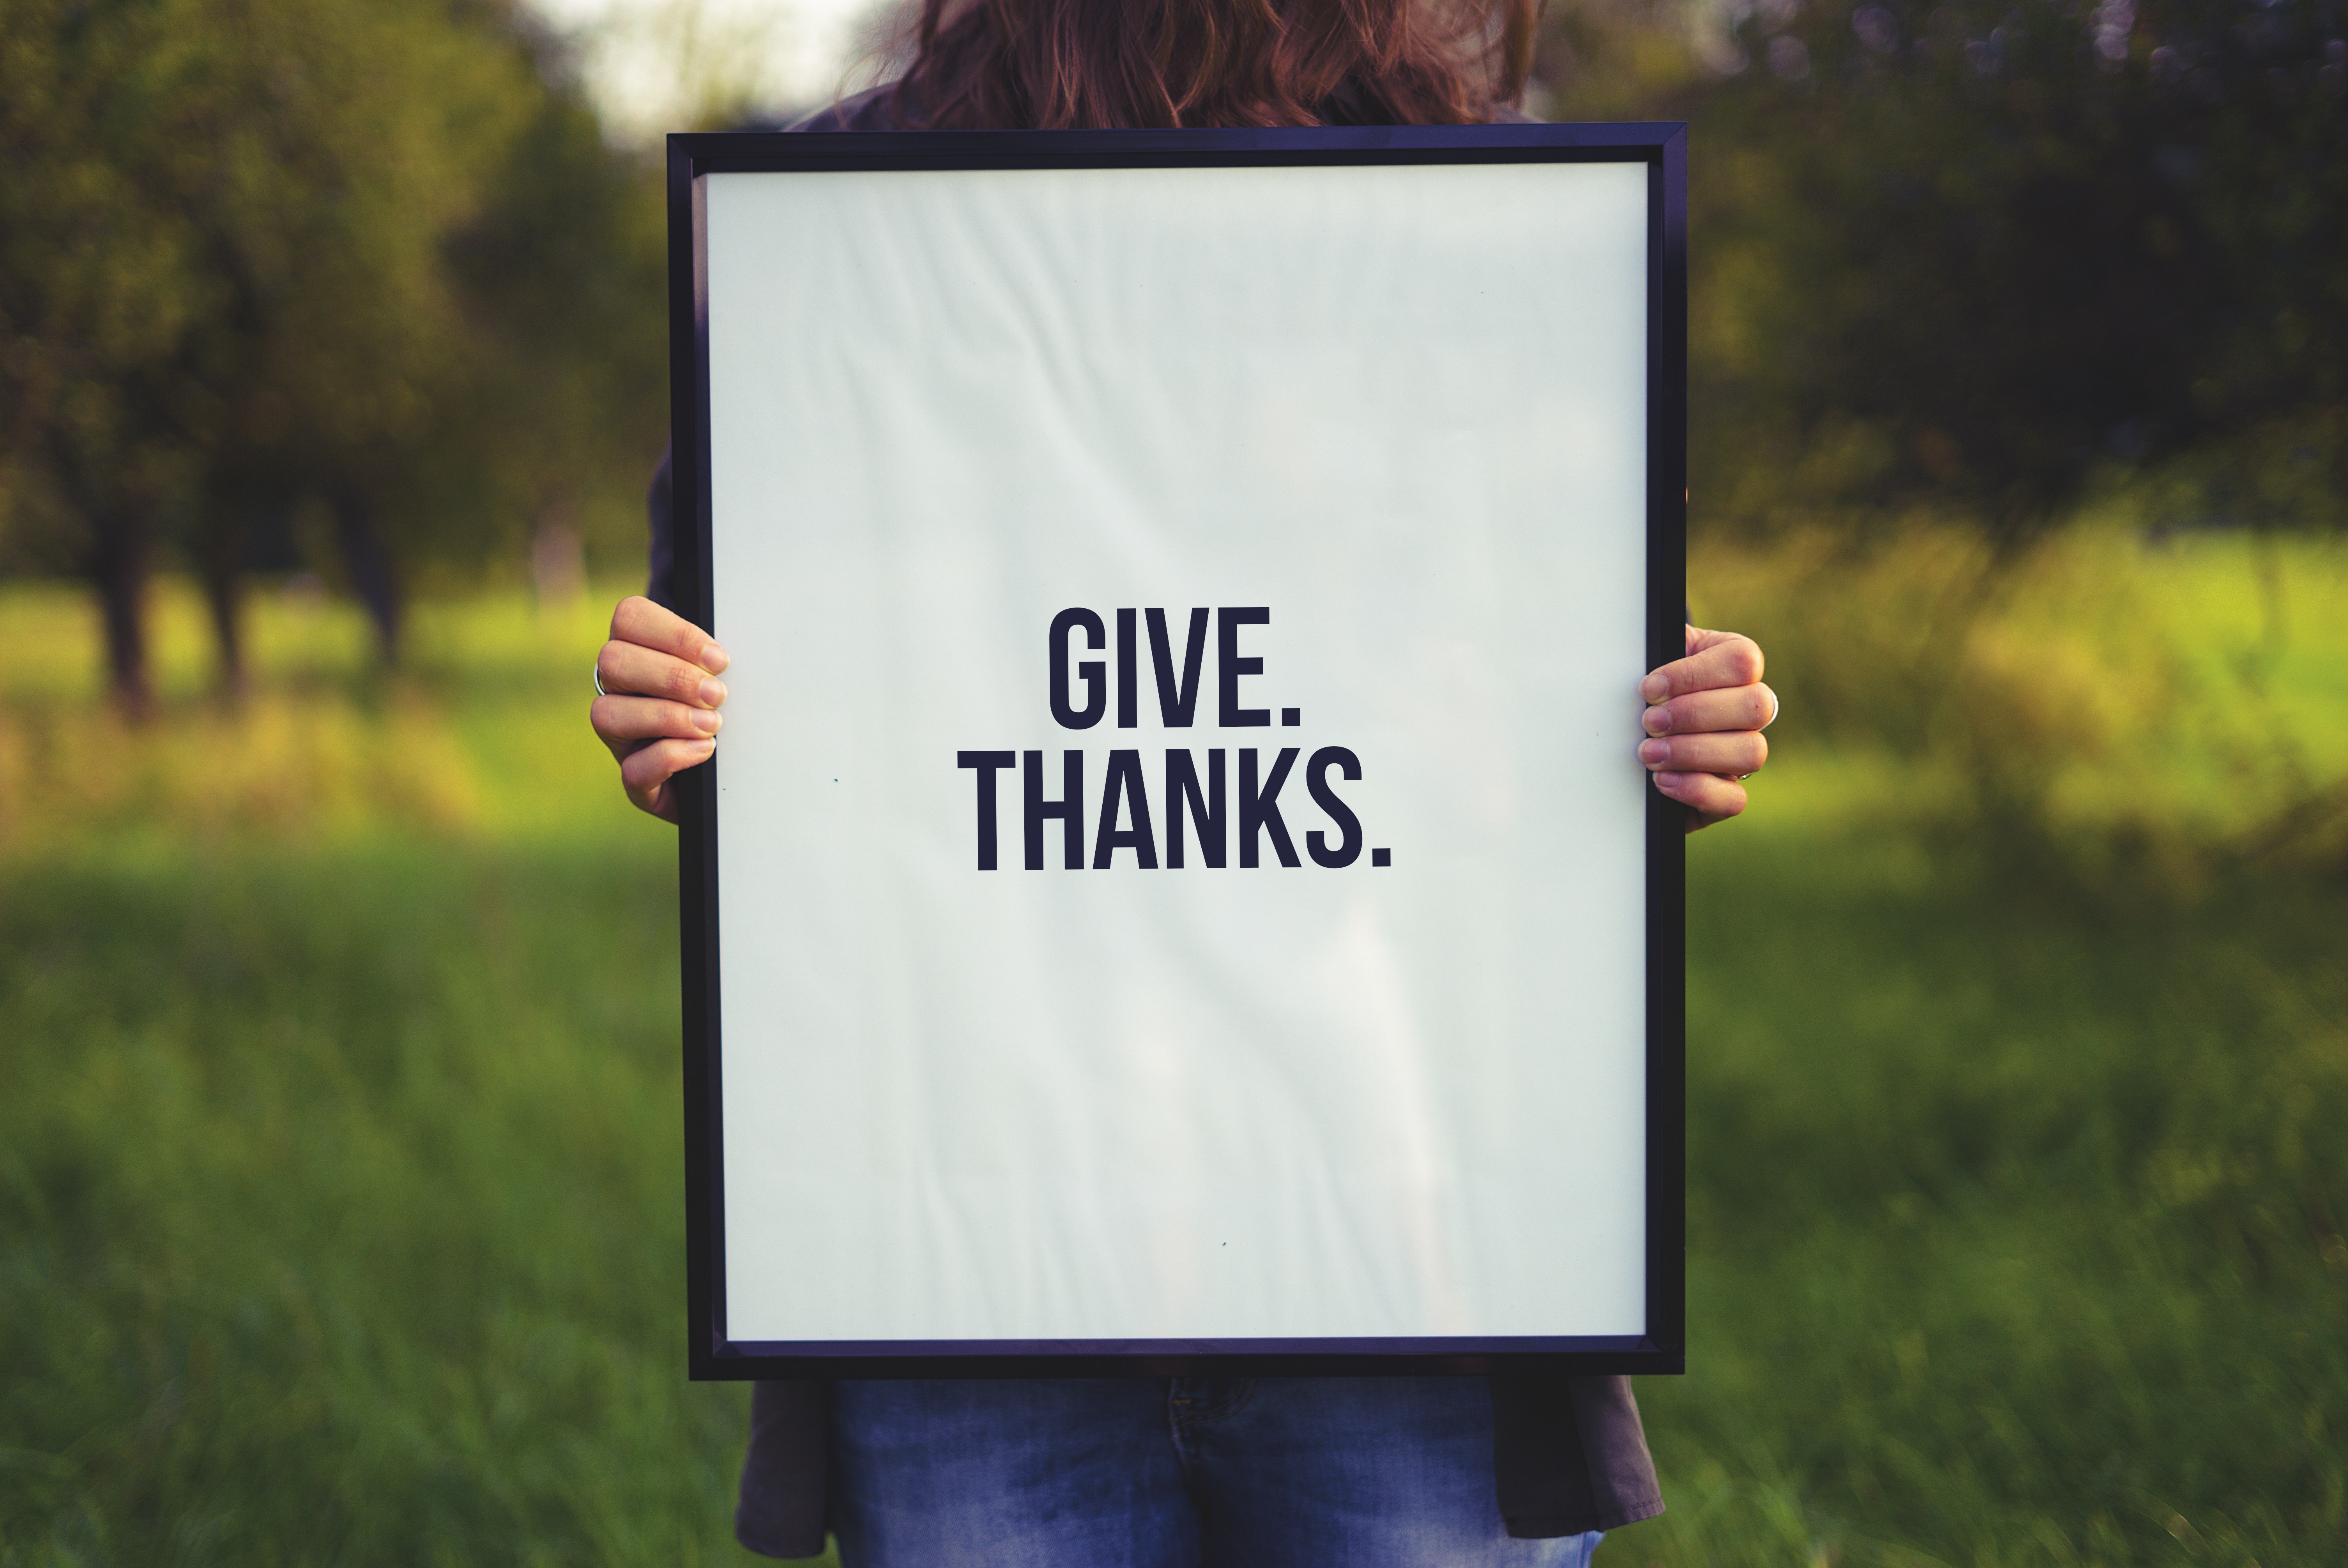 experience joy by giving thanks bible verses about thanksgiving